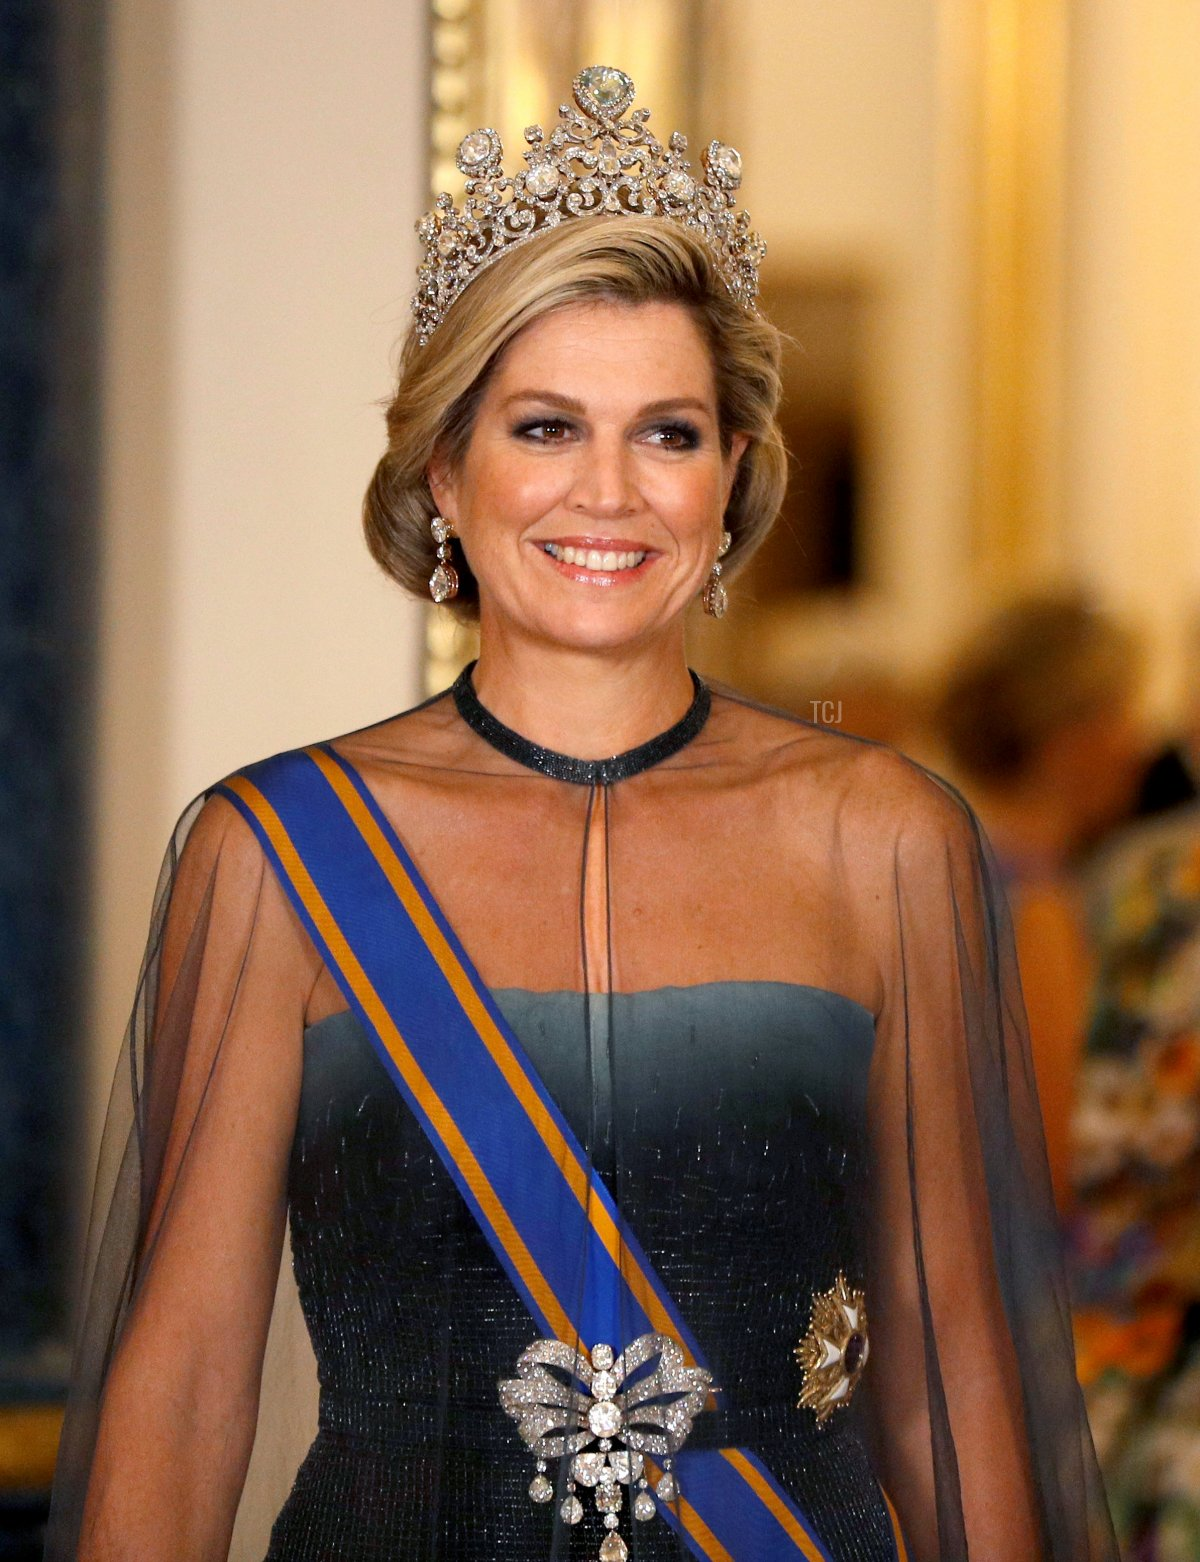 Queen Maxima of The Netherlands wears the Stuart Tiara during a State Banquet at Buckingham Palace on October 23, 2018 in London